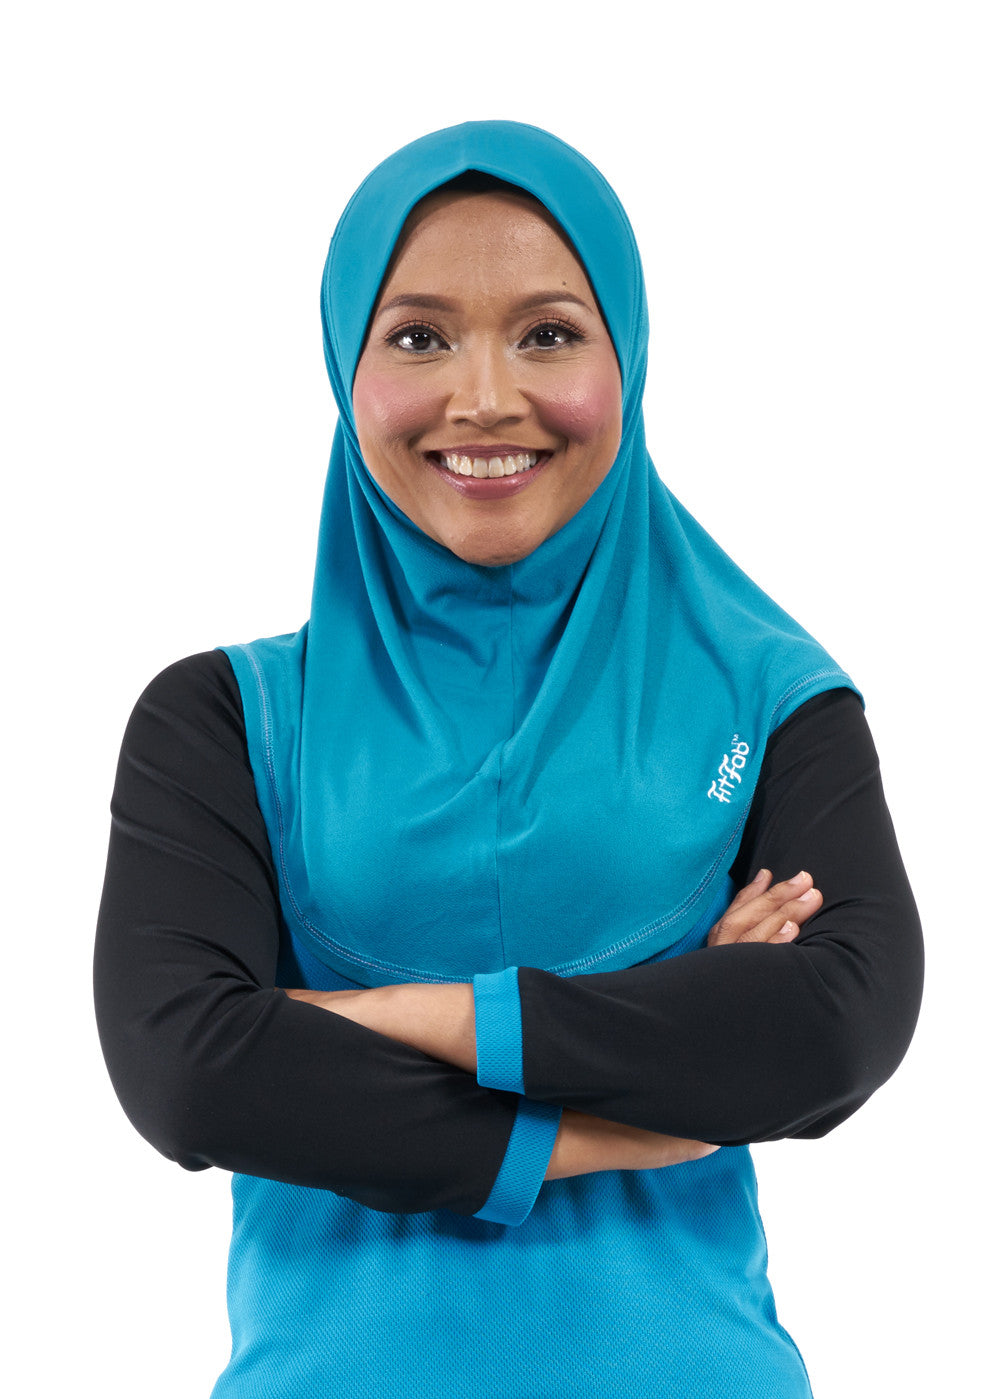 Sporty Hijab Ocean Breeze with Awning